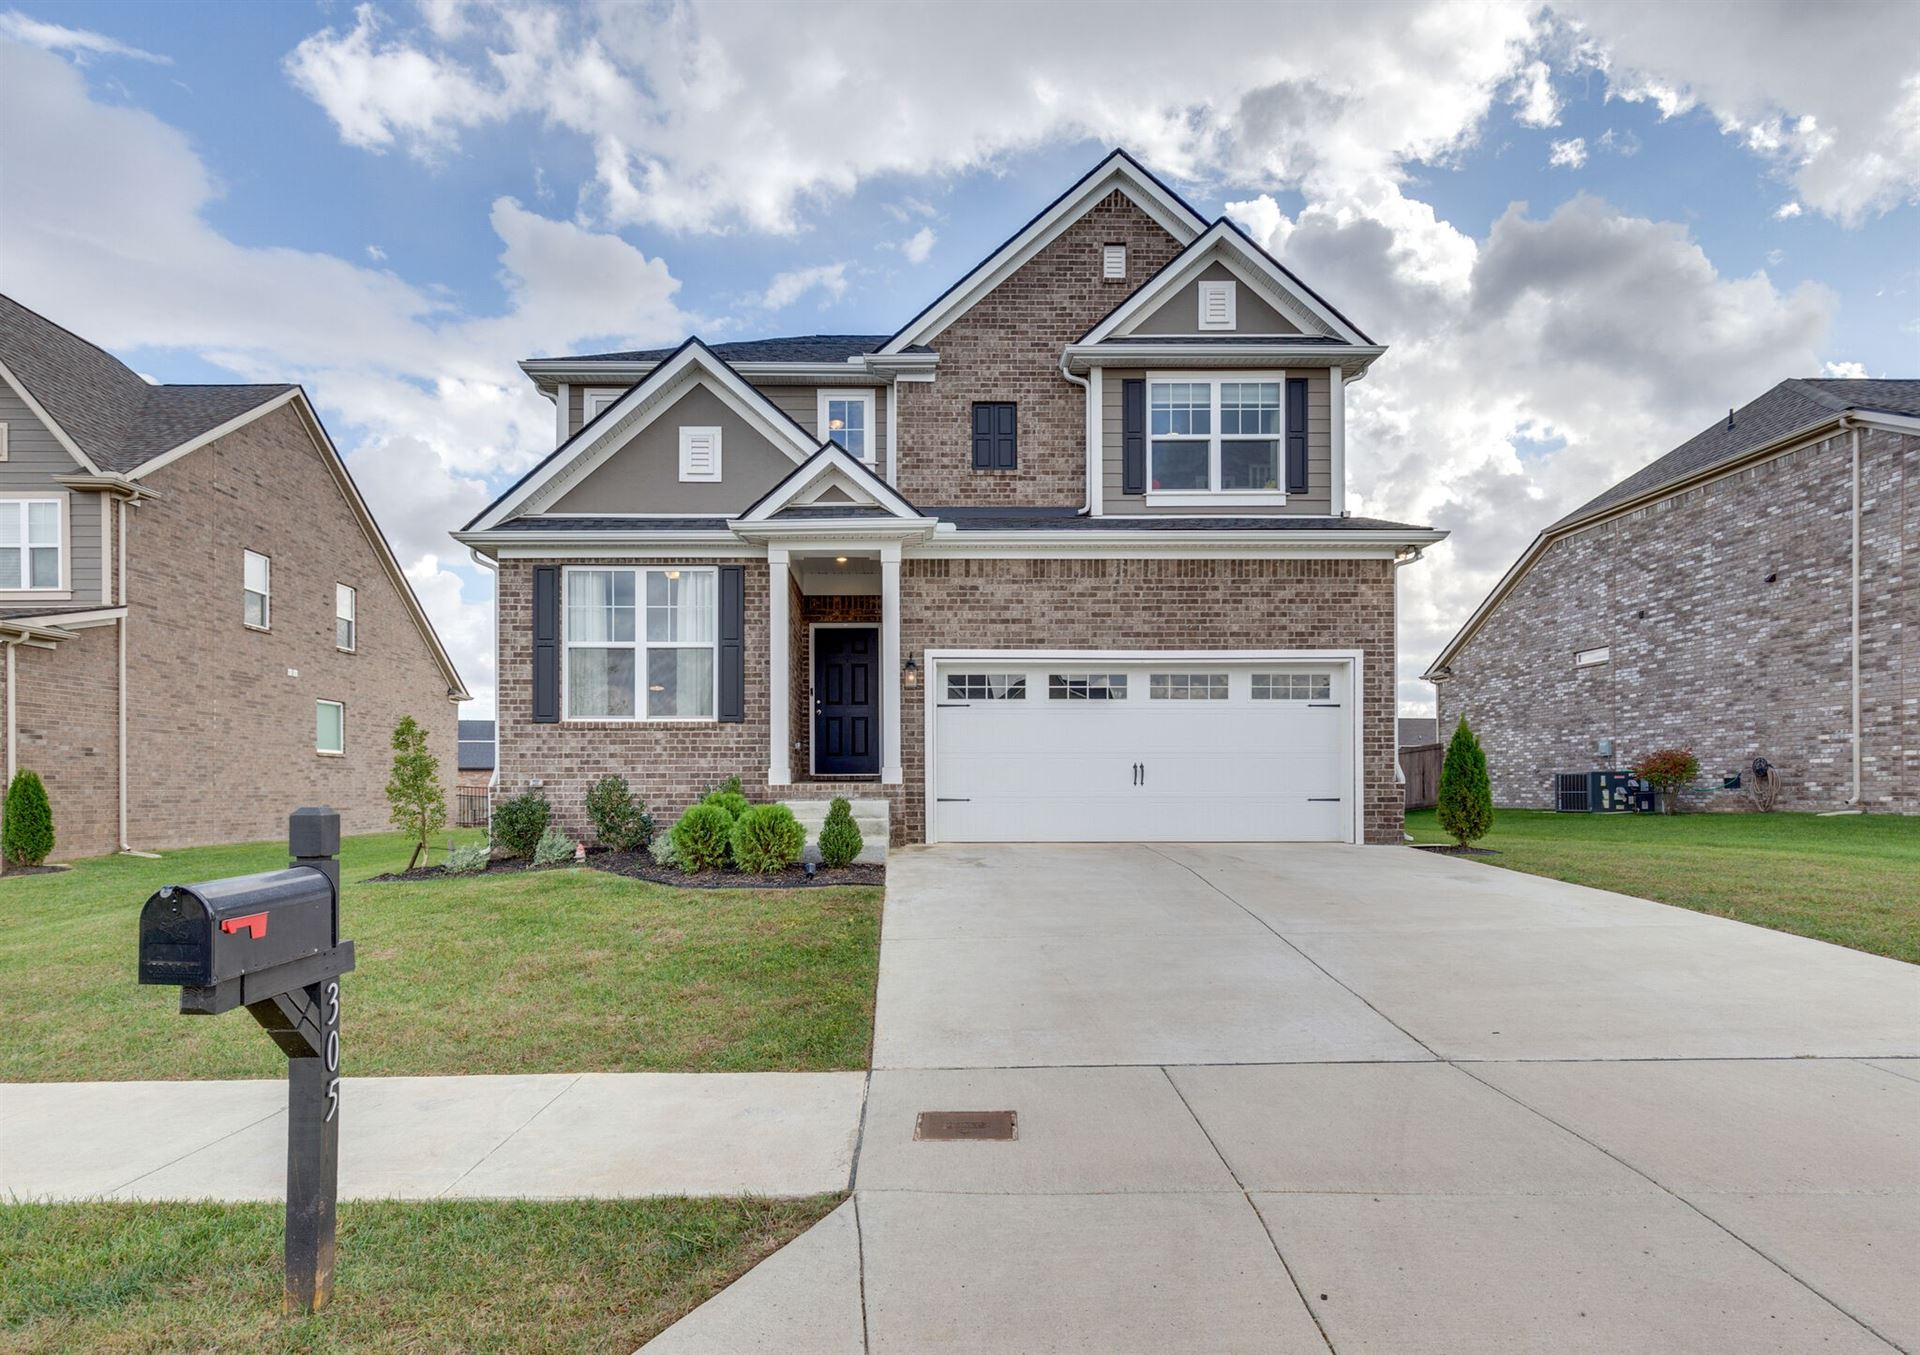 Photo of 305 Eastwood Ln, Spring Hill, TN 37174 (MLS # 2200983)